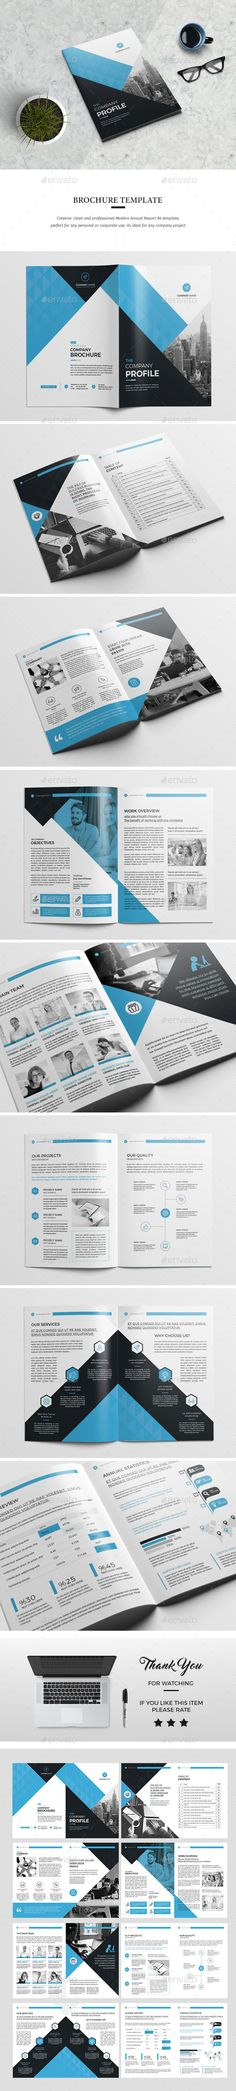 Company Profile Brochure 14 Pages A4 Folletos, Diseño y Cartas - business company profile template